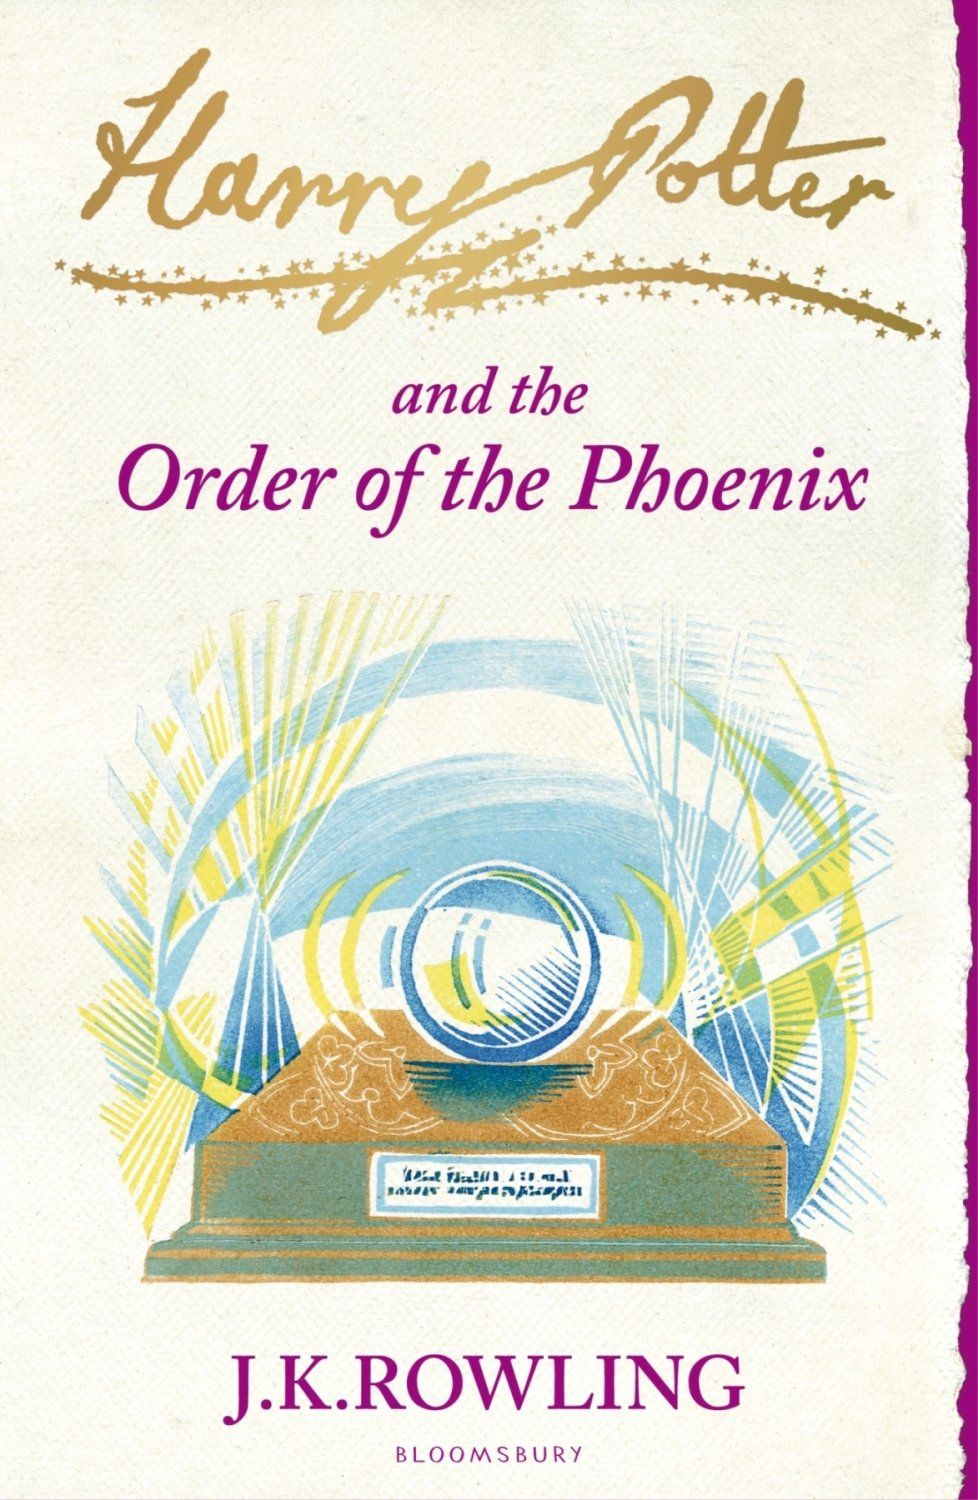 Image result for order of the phoenix book cover uk